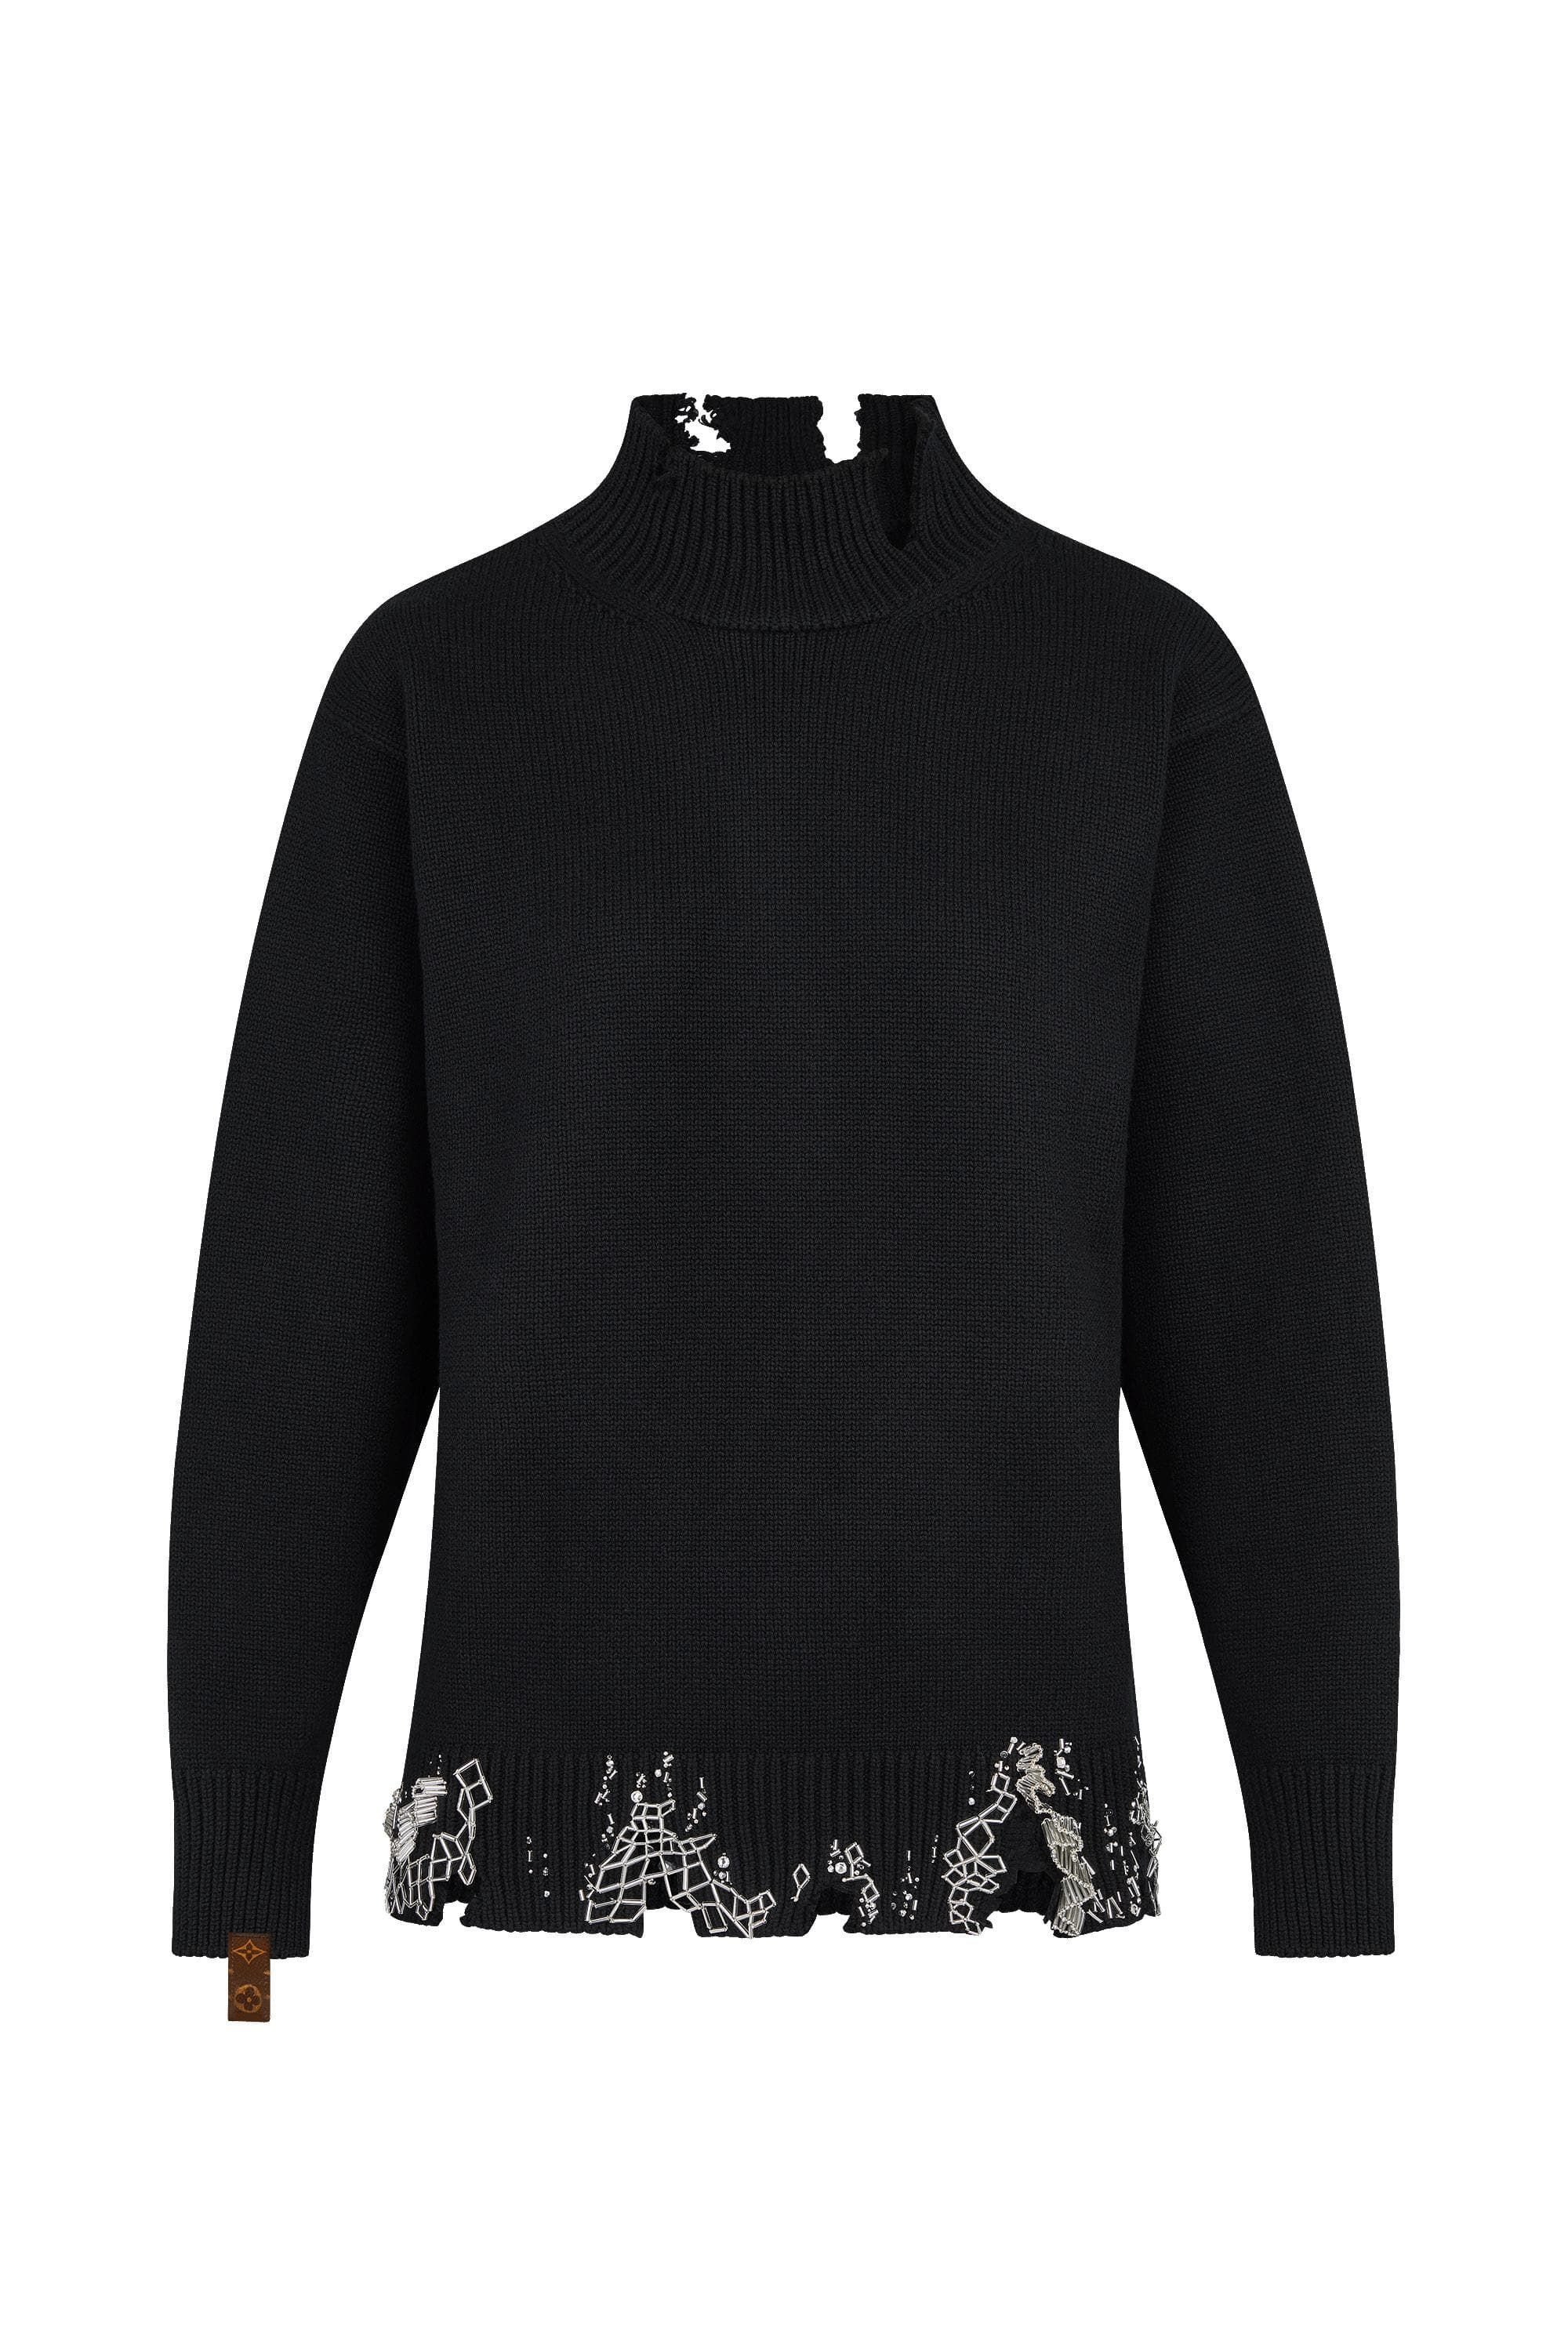 dee5ca007e Embroidered Knitted Pullover - Ready-to-Wear   LOUIS VUITTON   Áo ...